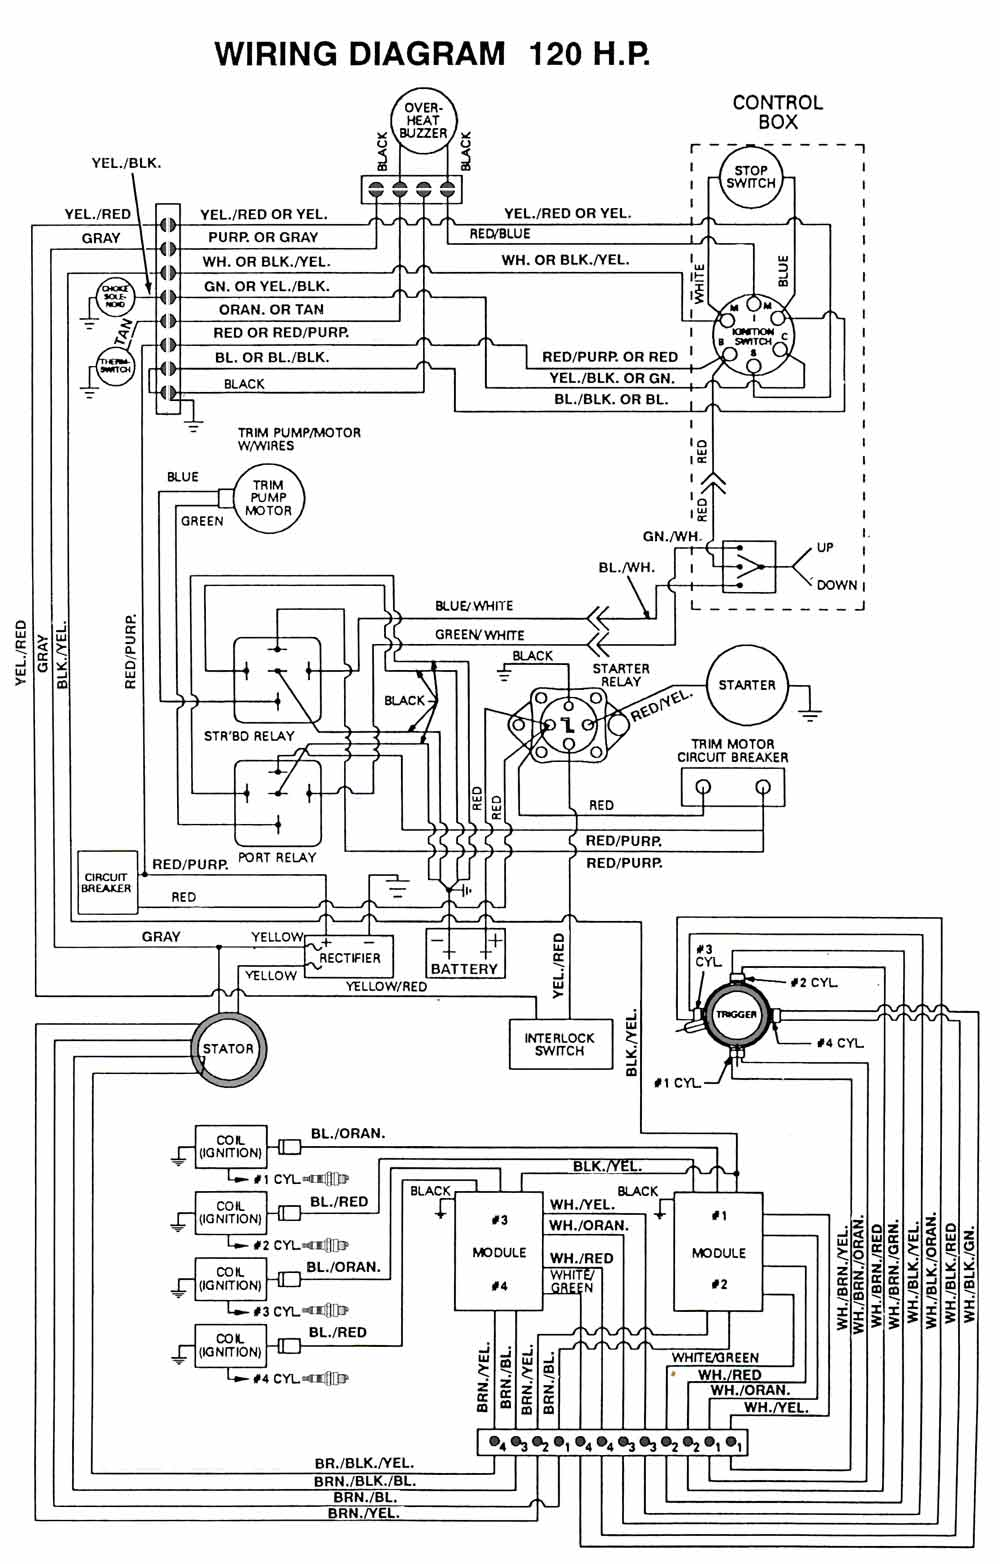 Chrysler Outboard Wiring Diagrams Mastertech Marine Mopar Performance Ignition Diagram Force 120 Hp Thru 1991a Models Engine